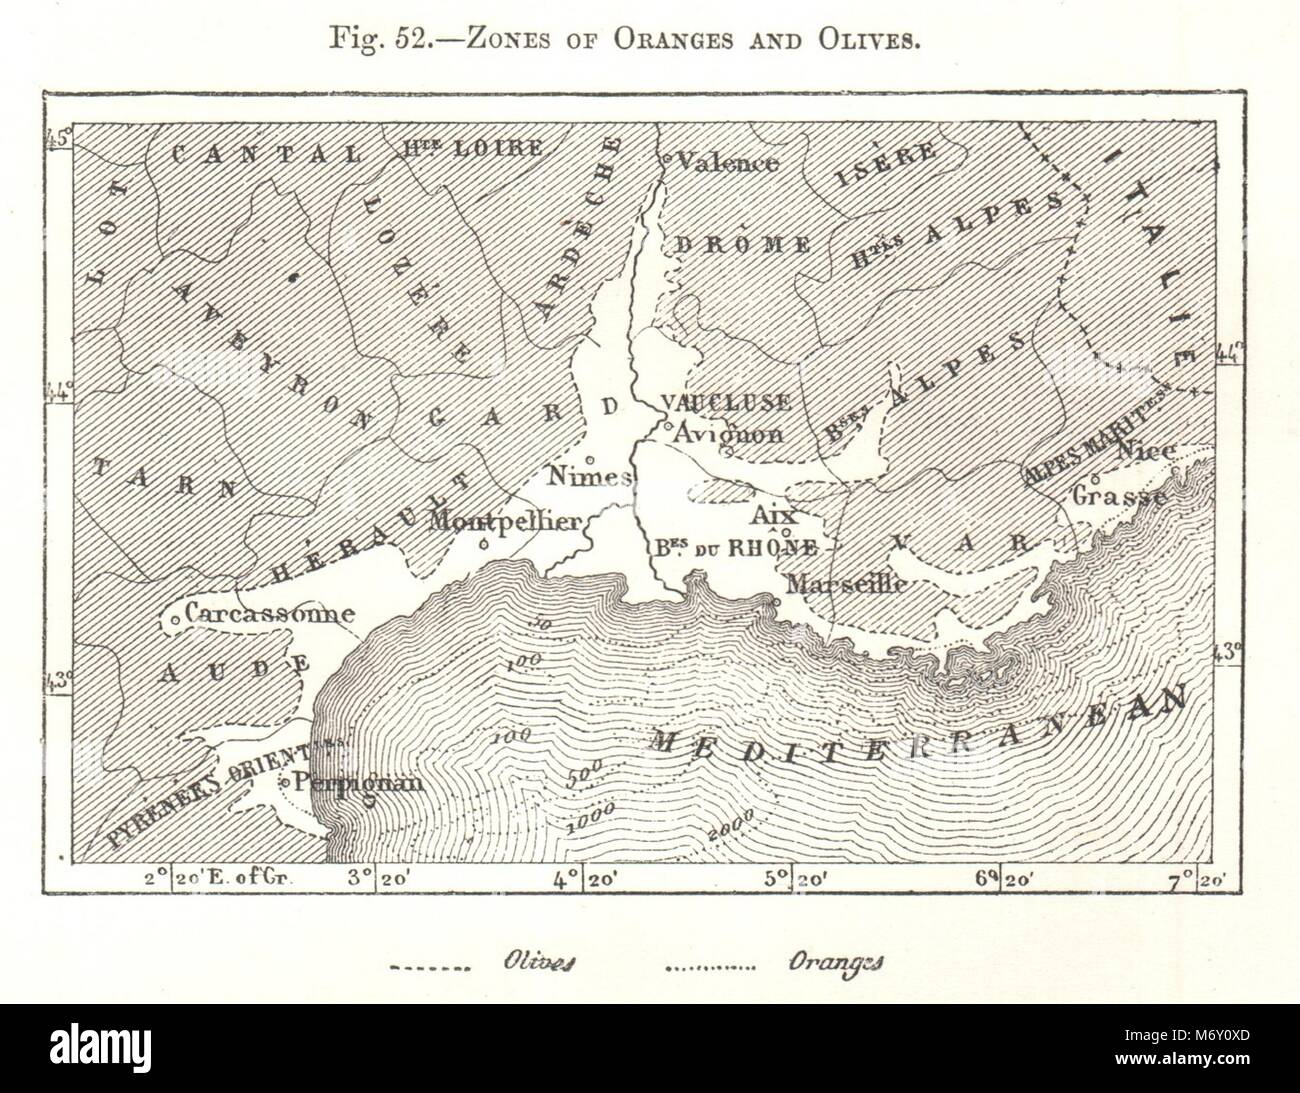 Zones Of Oranges And Olives Southern France Sketch Map 1885 Old